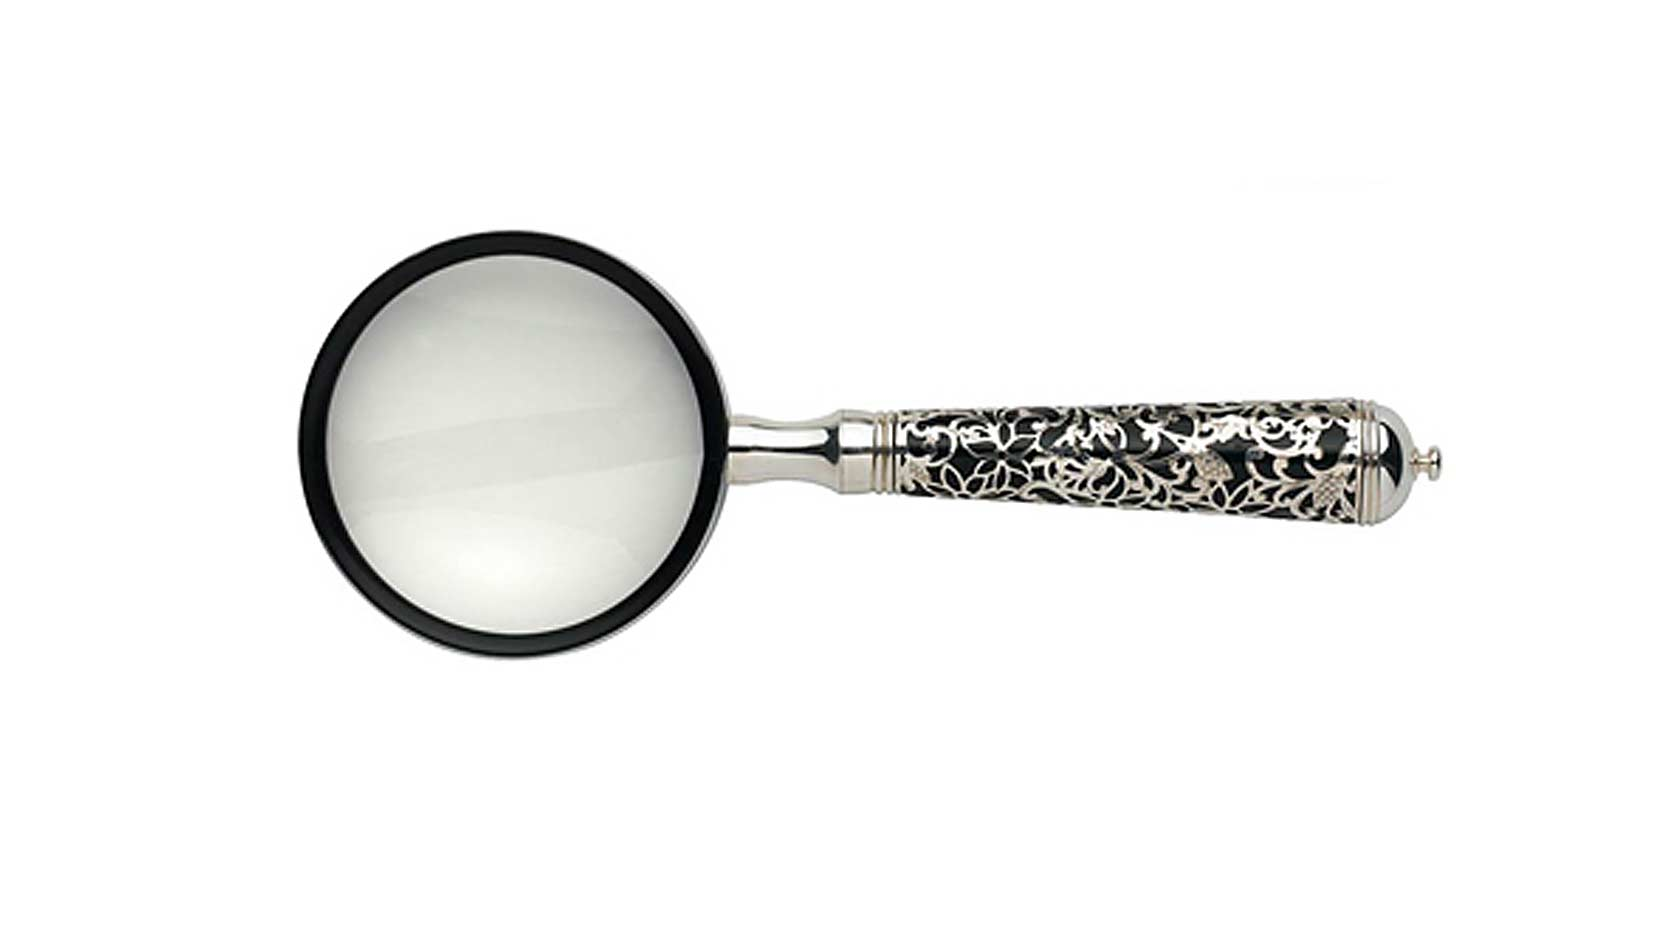 Insolent Magnifying Glass